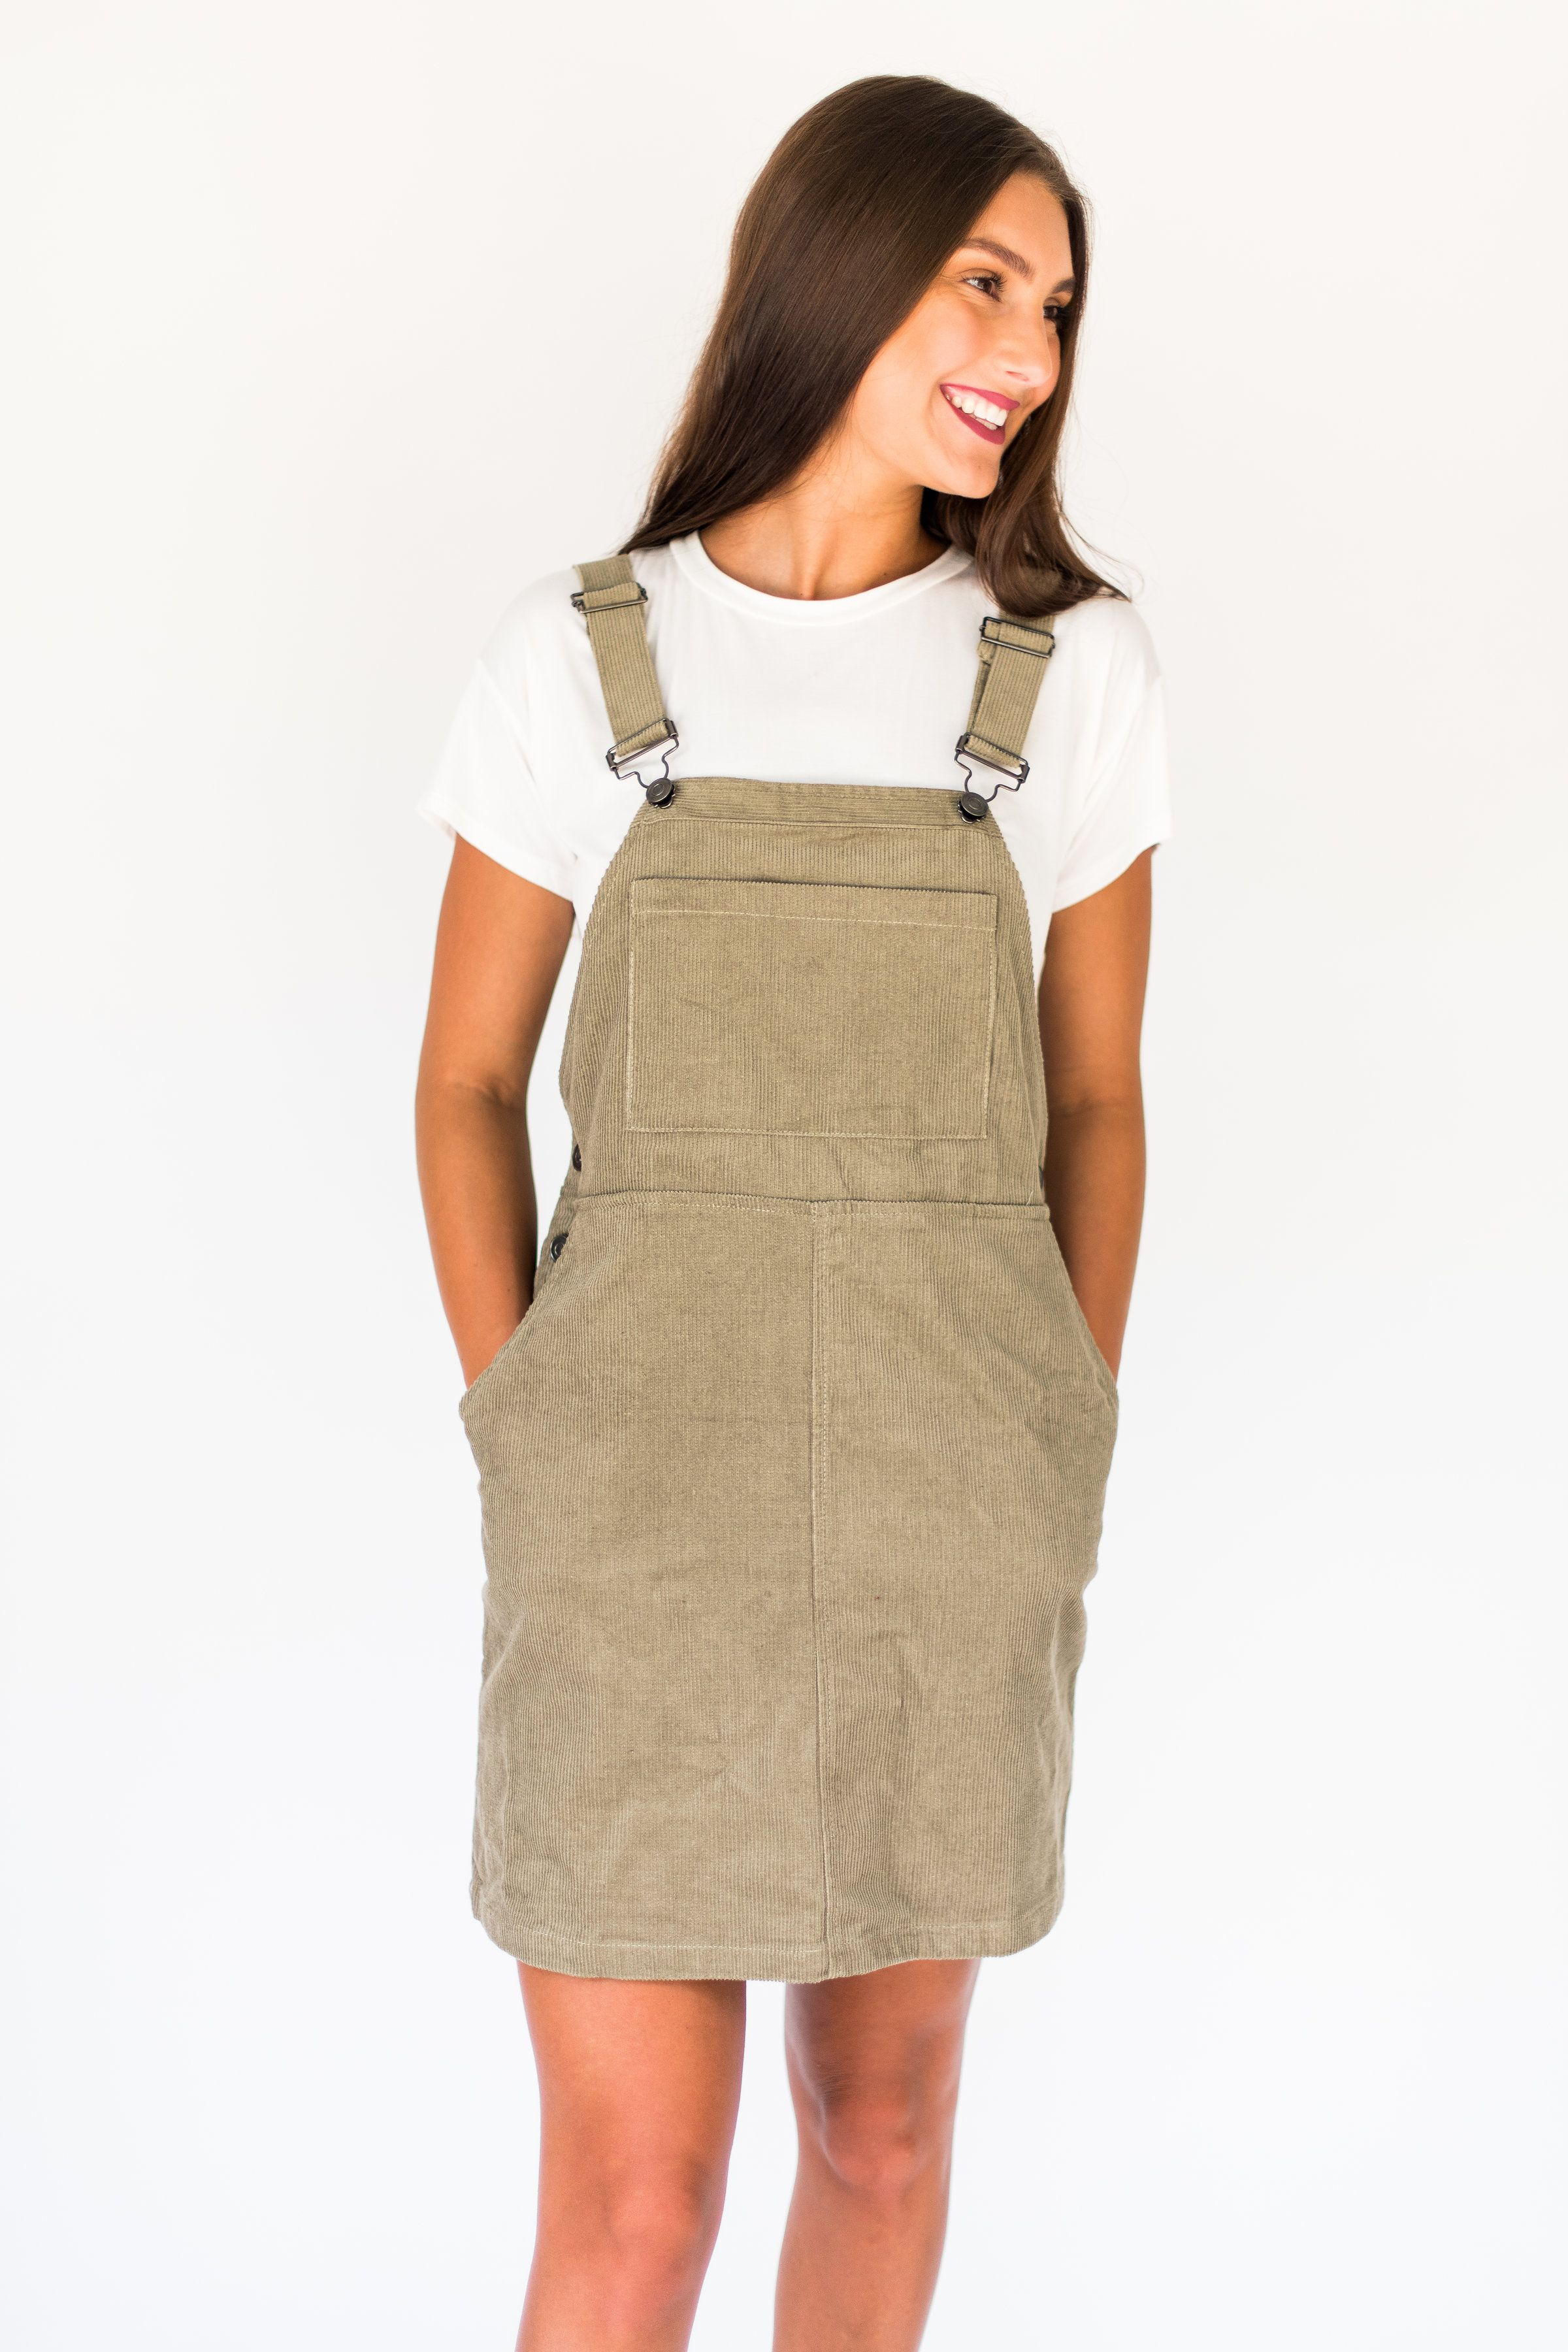 Simple Chic Olive Corduroy Overalls Corduroy Overall Dress Fashion Overall Dress [ 3600 x 2400 Pixel ]